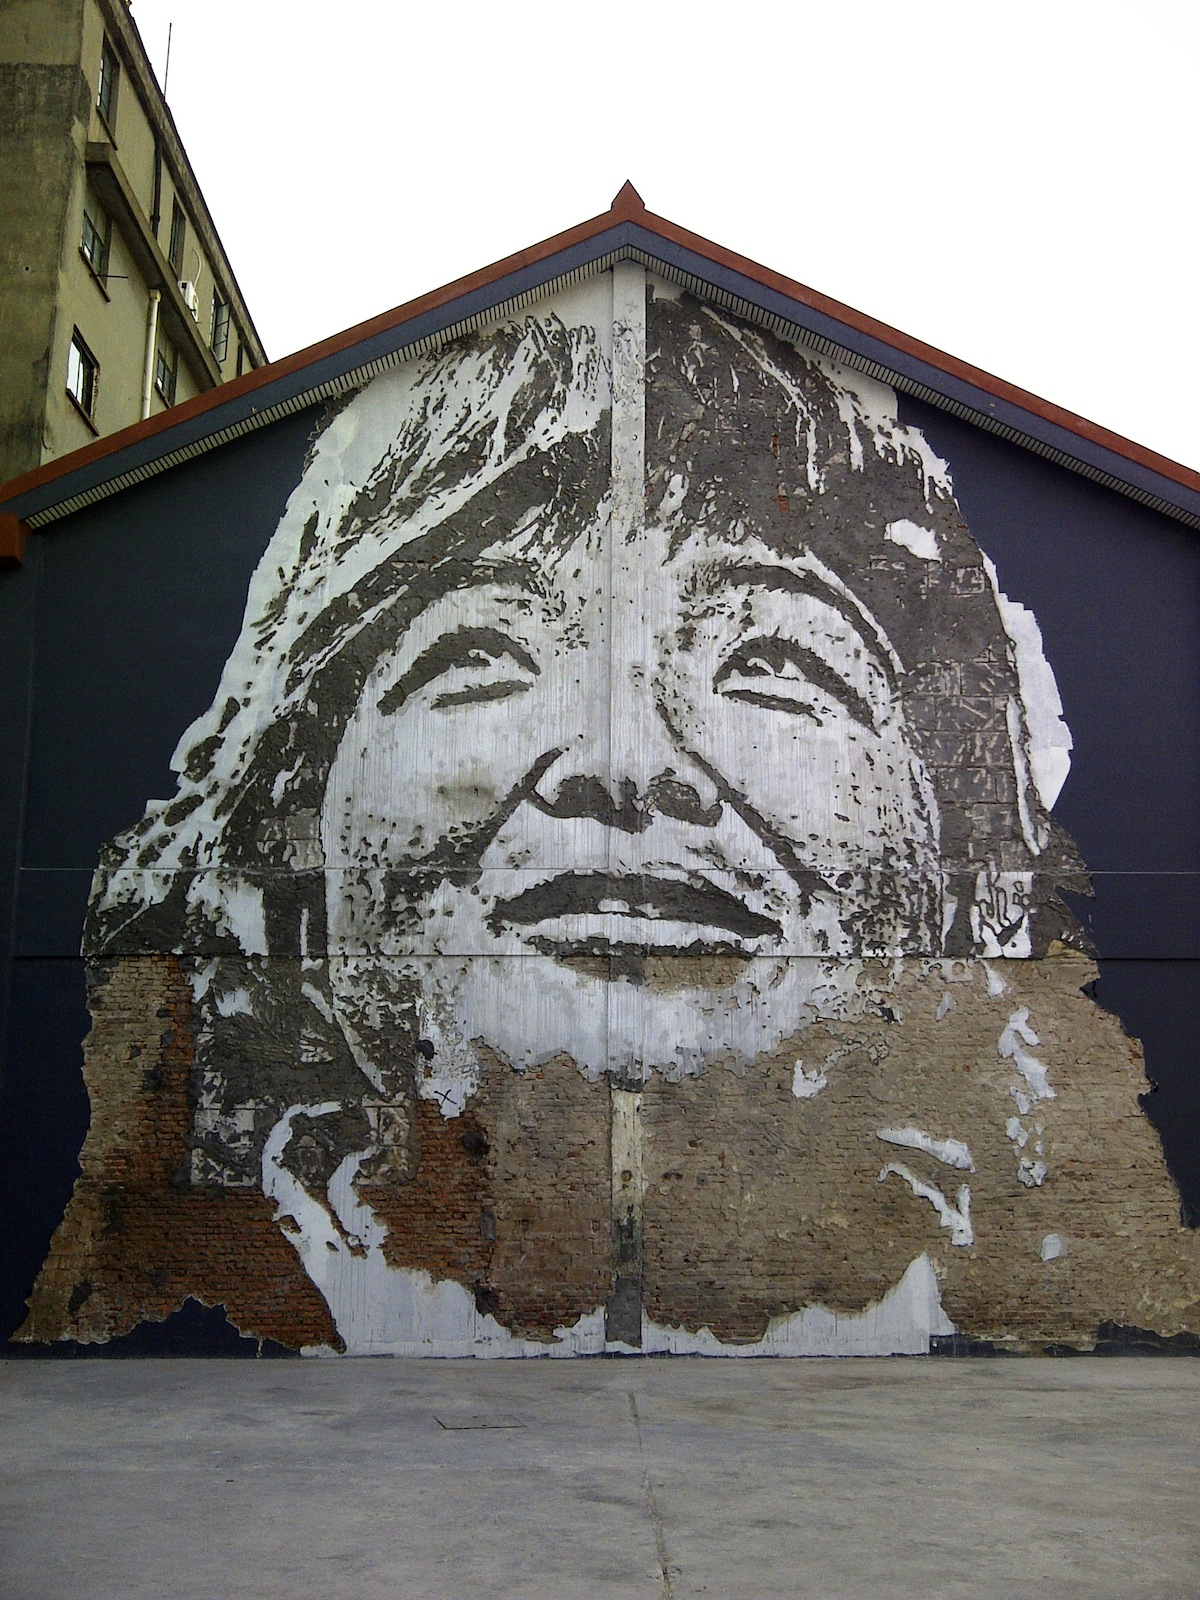 Street Art by Vhils – In Shanghai, China